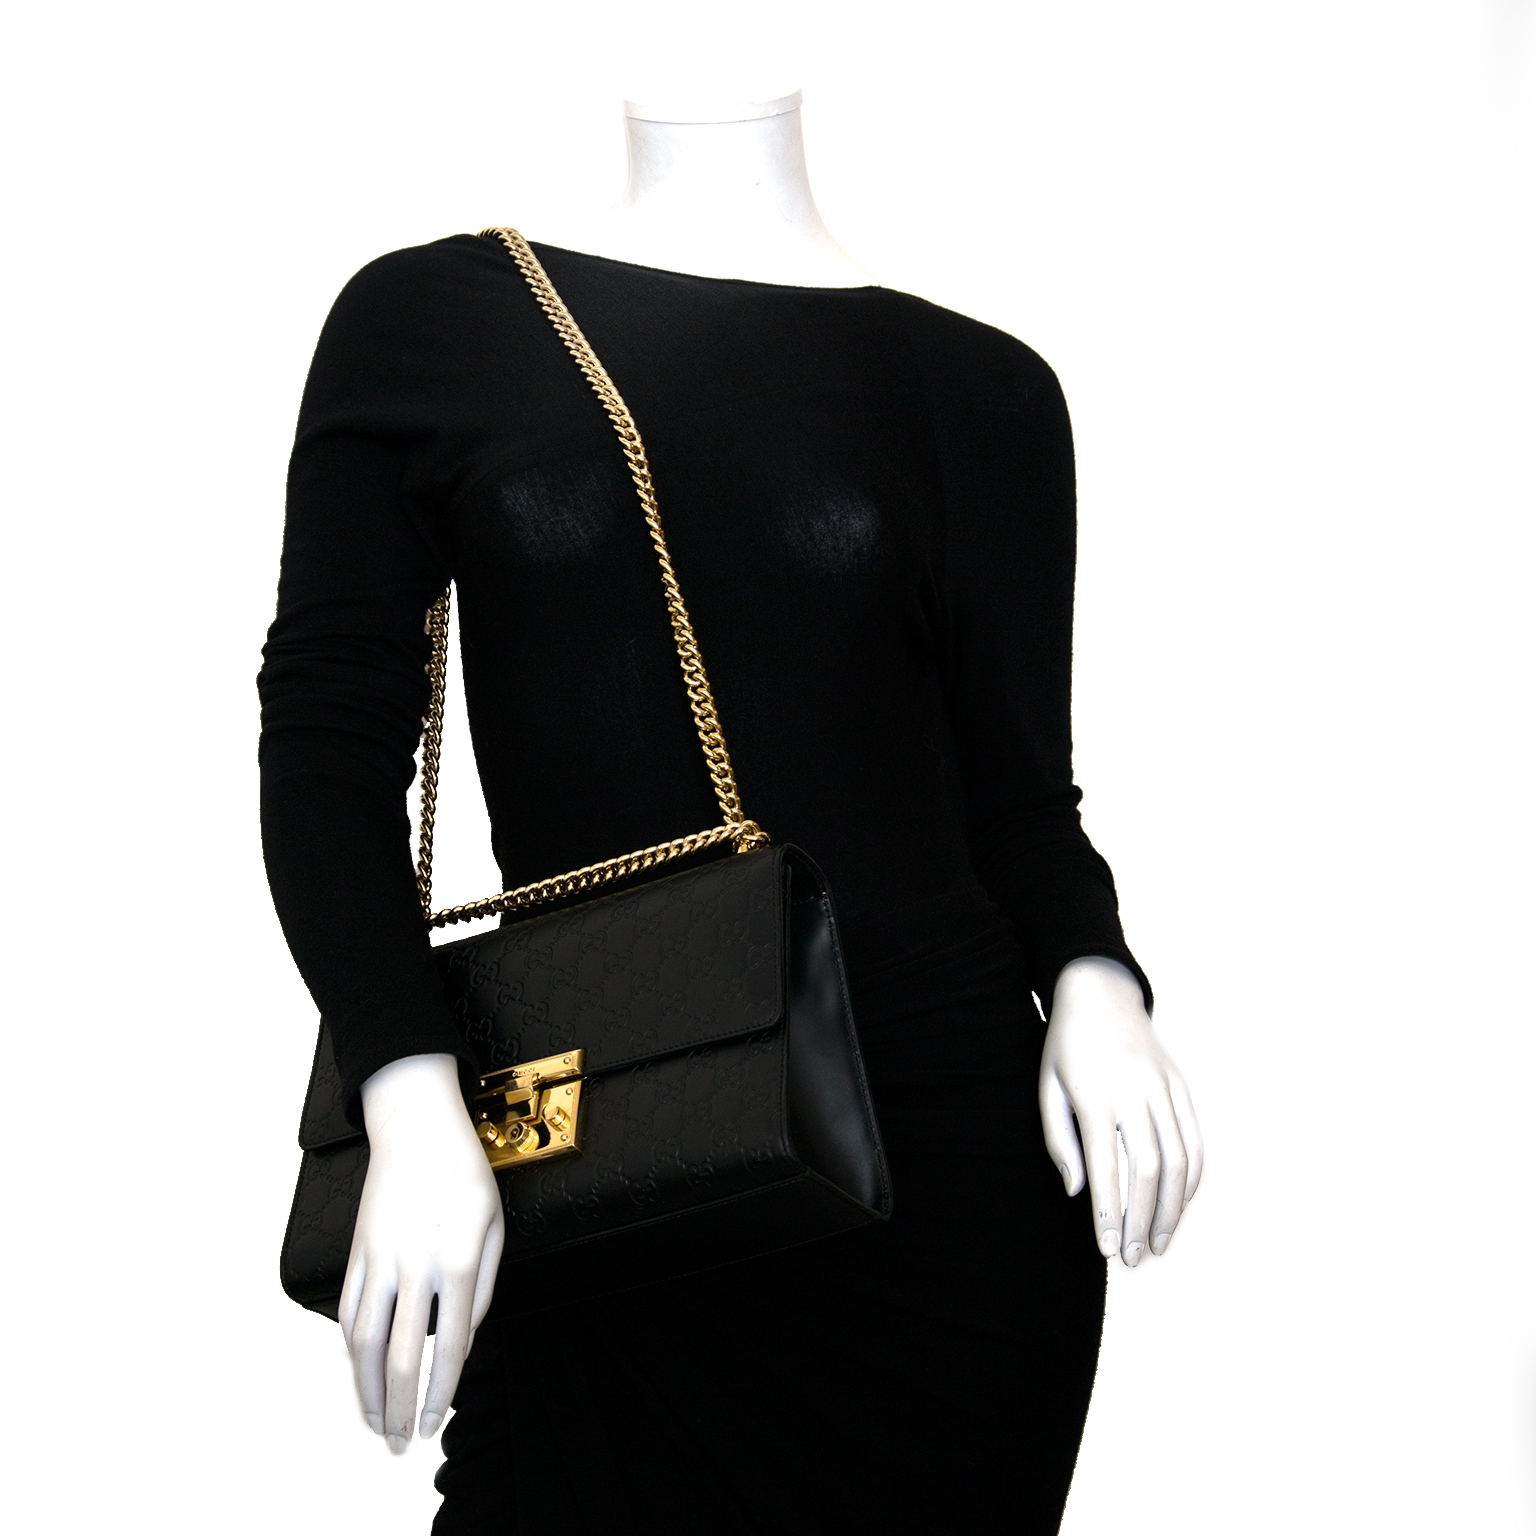 Gucci Black Padlock Medium Signature Shoulder Bag now online at labellov.com for the best price